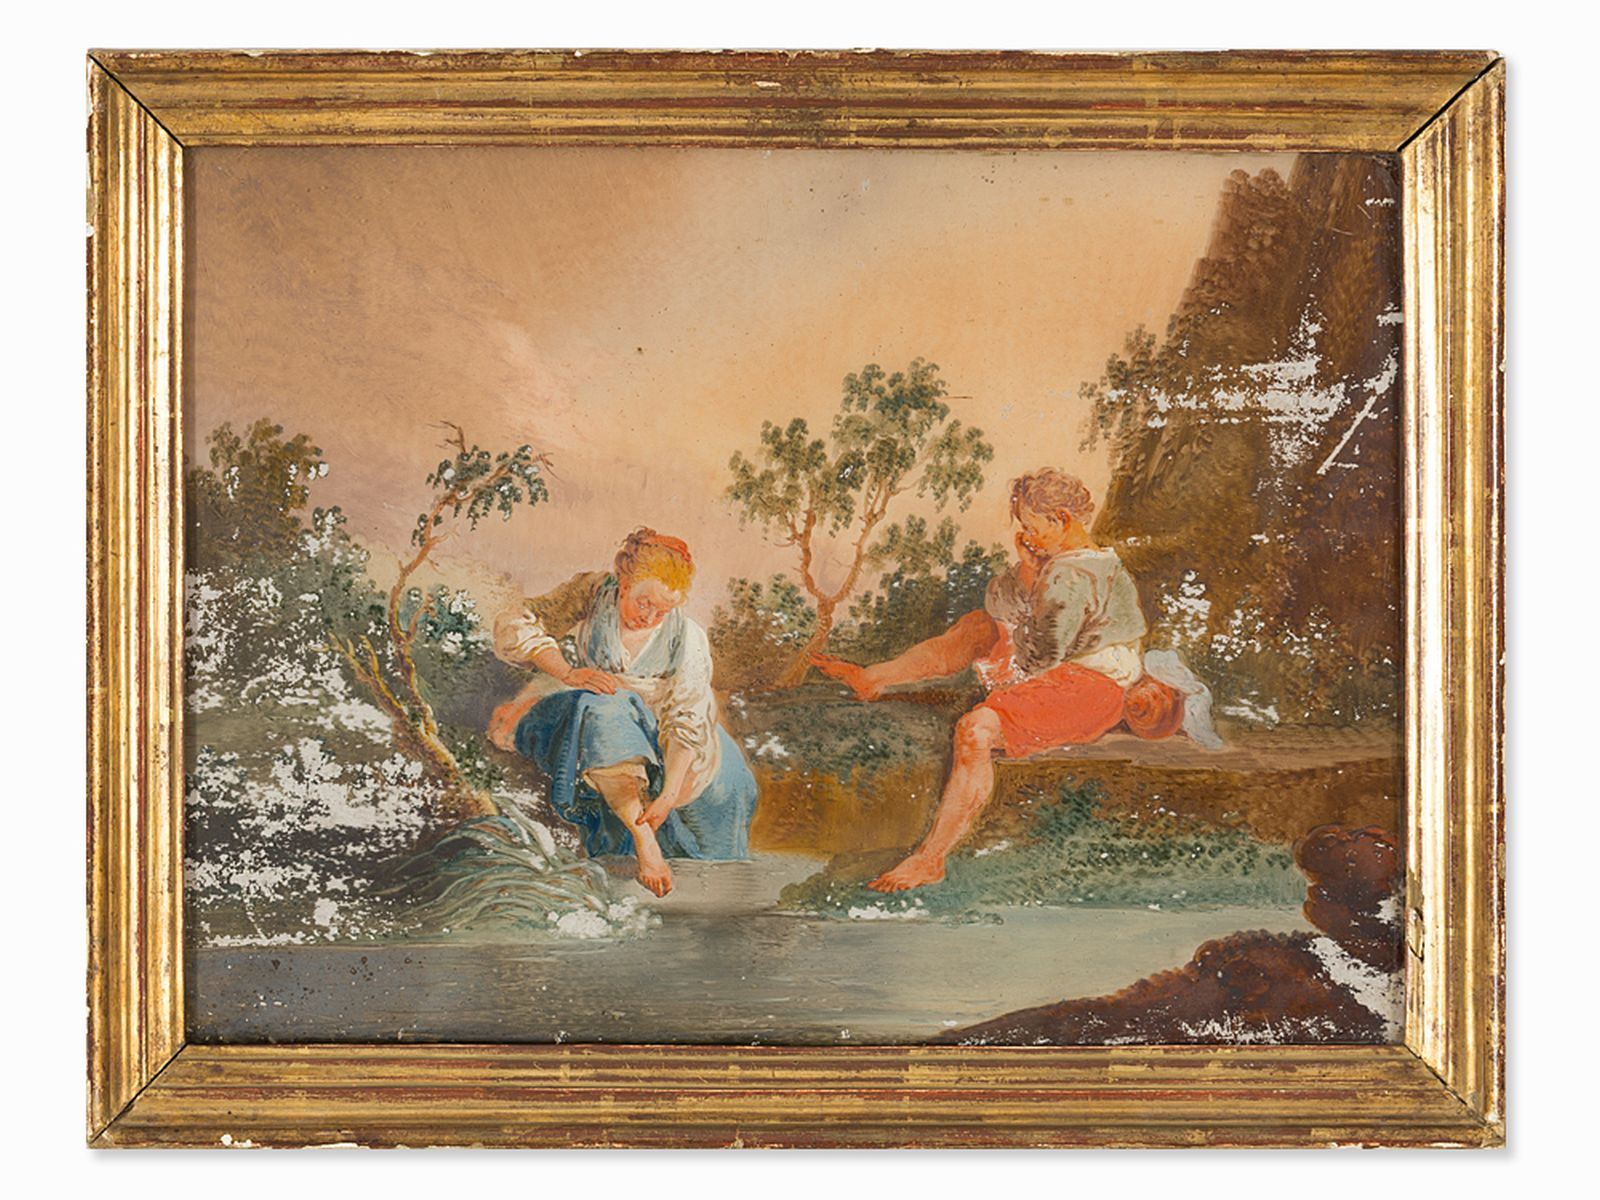 #34 Children By the River, Reverse Glass Painting, French, 18th C. | Image